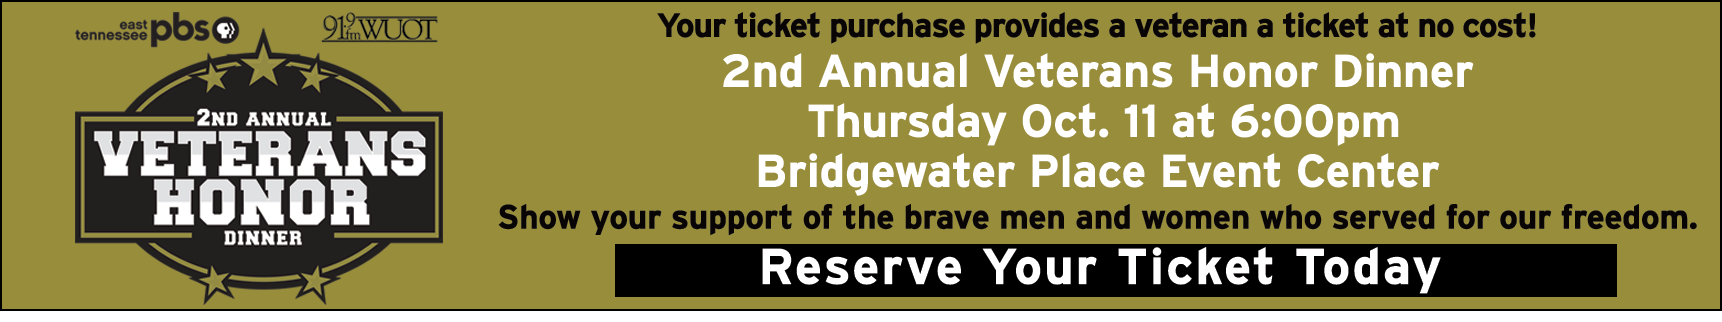 Join us for the Second Annual Veterans Honor Dinner